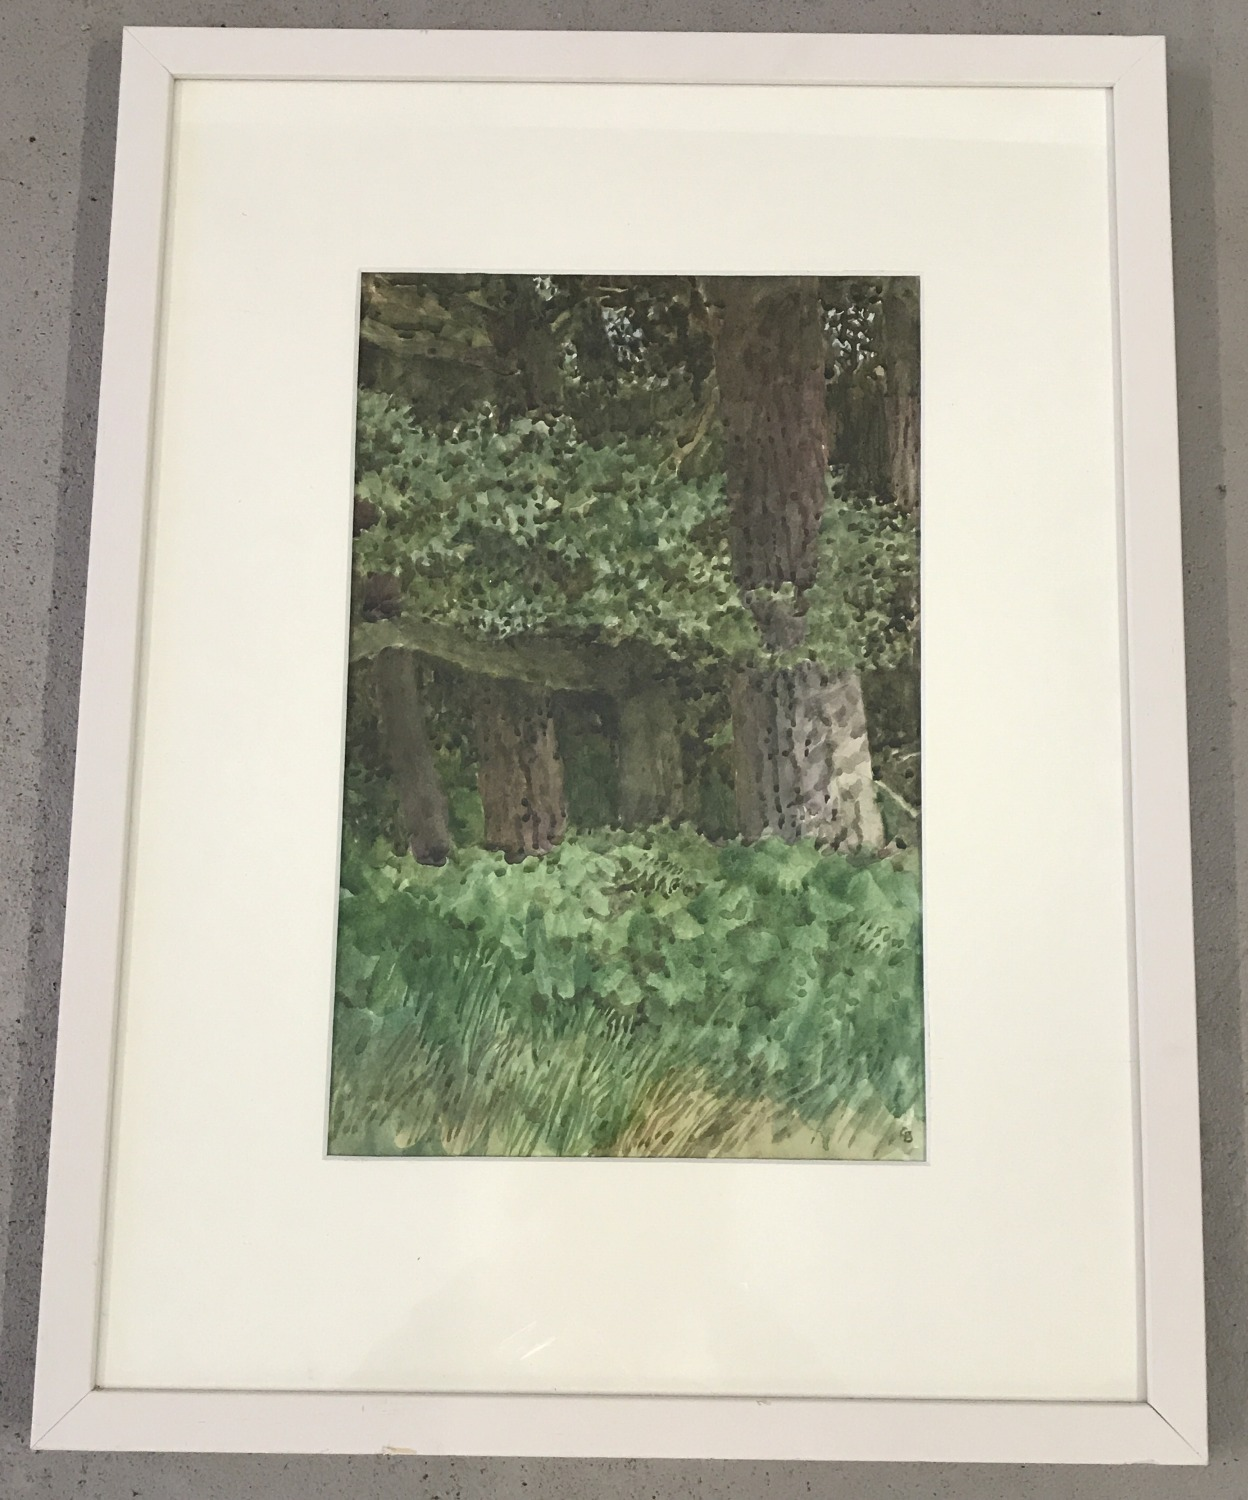 Lot 441 - A vintage framed & glazed watercolour of woodland by Colin Bygrave. In a white wooden frame.